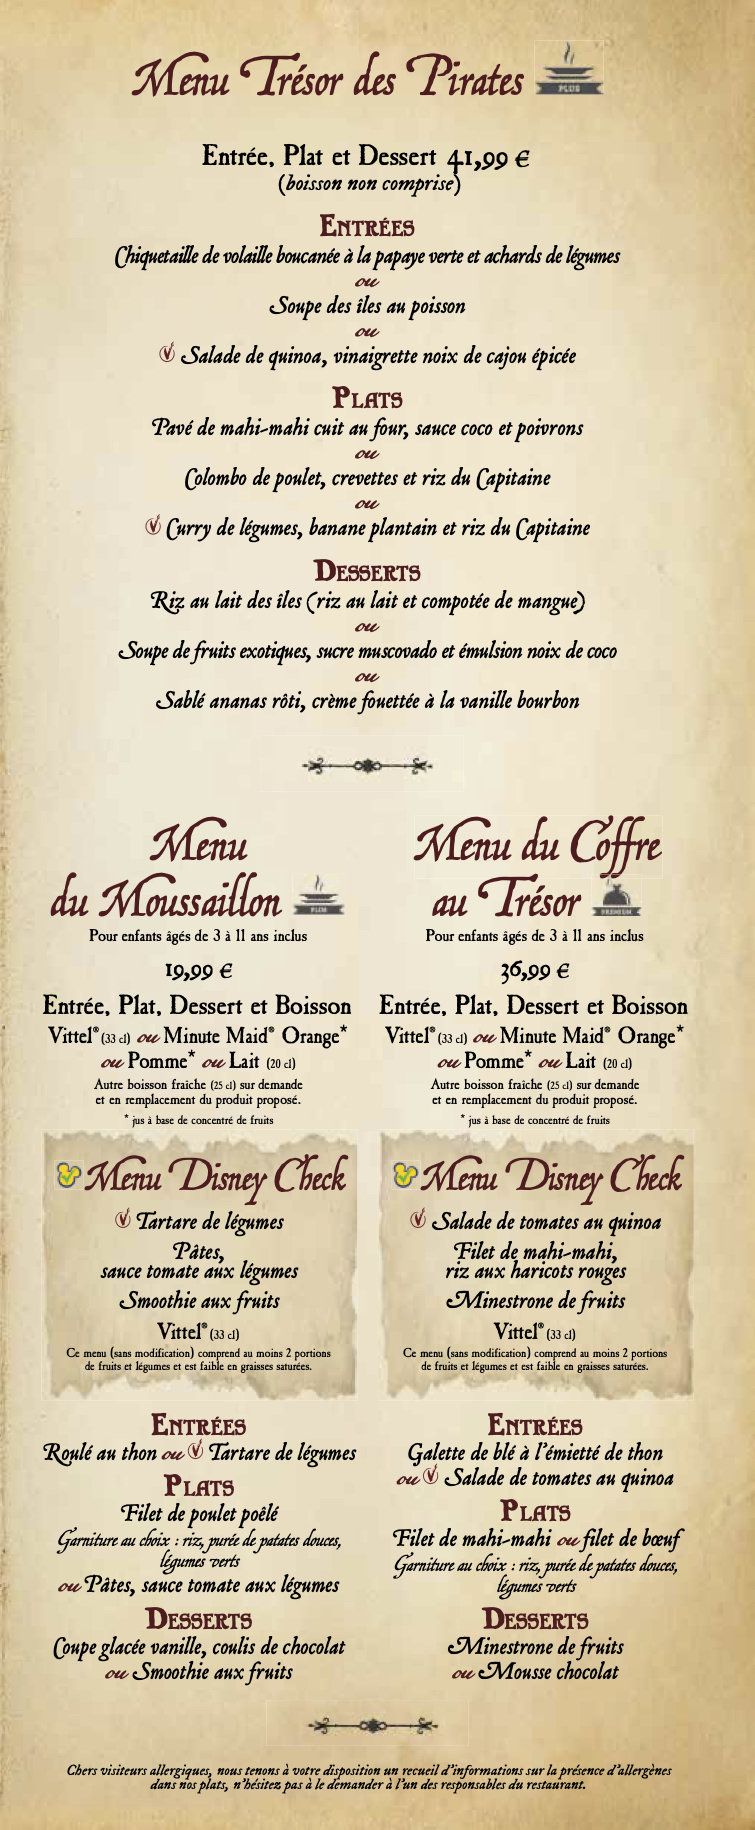 Captain-Jack_Menu_218x310_Juin2020-FR-V24